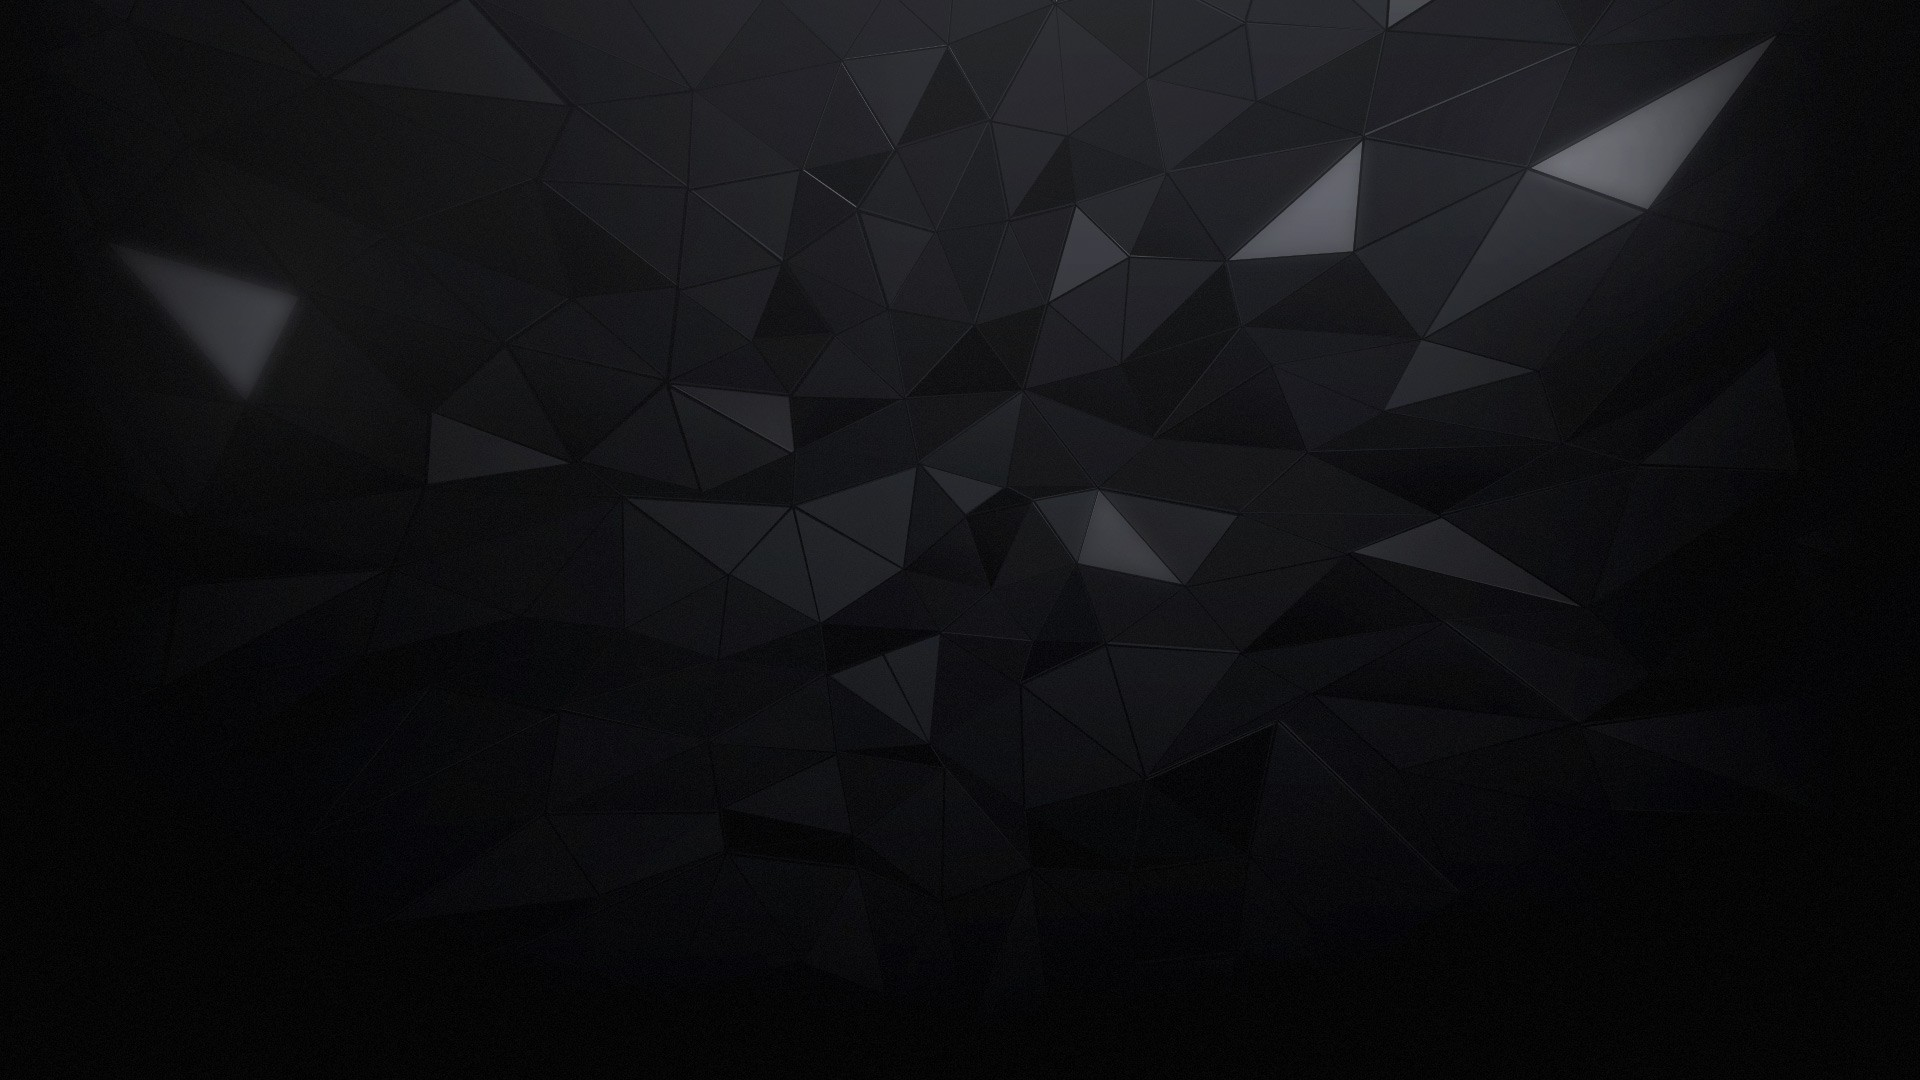 3d Liquid Abstract Wallpaper Minimalism Triangle Black Abstract Wallpapers Hd